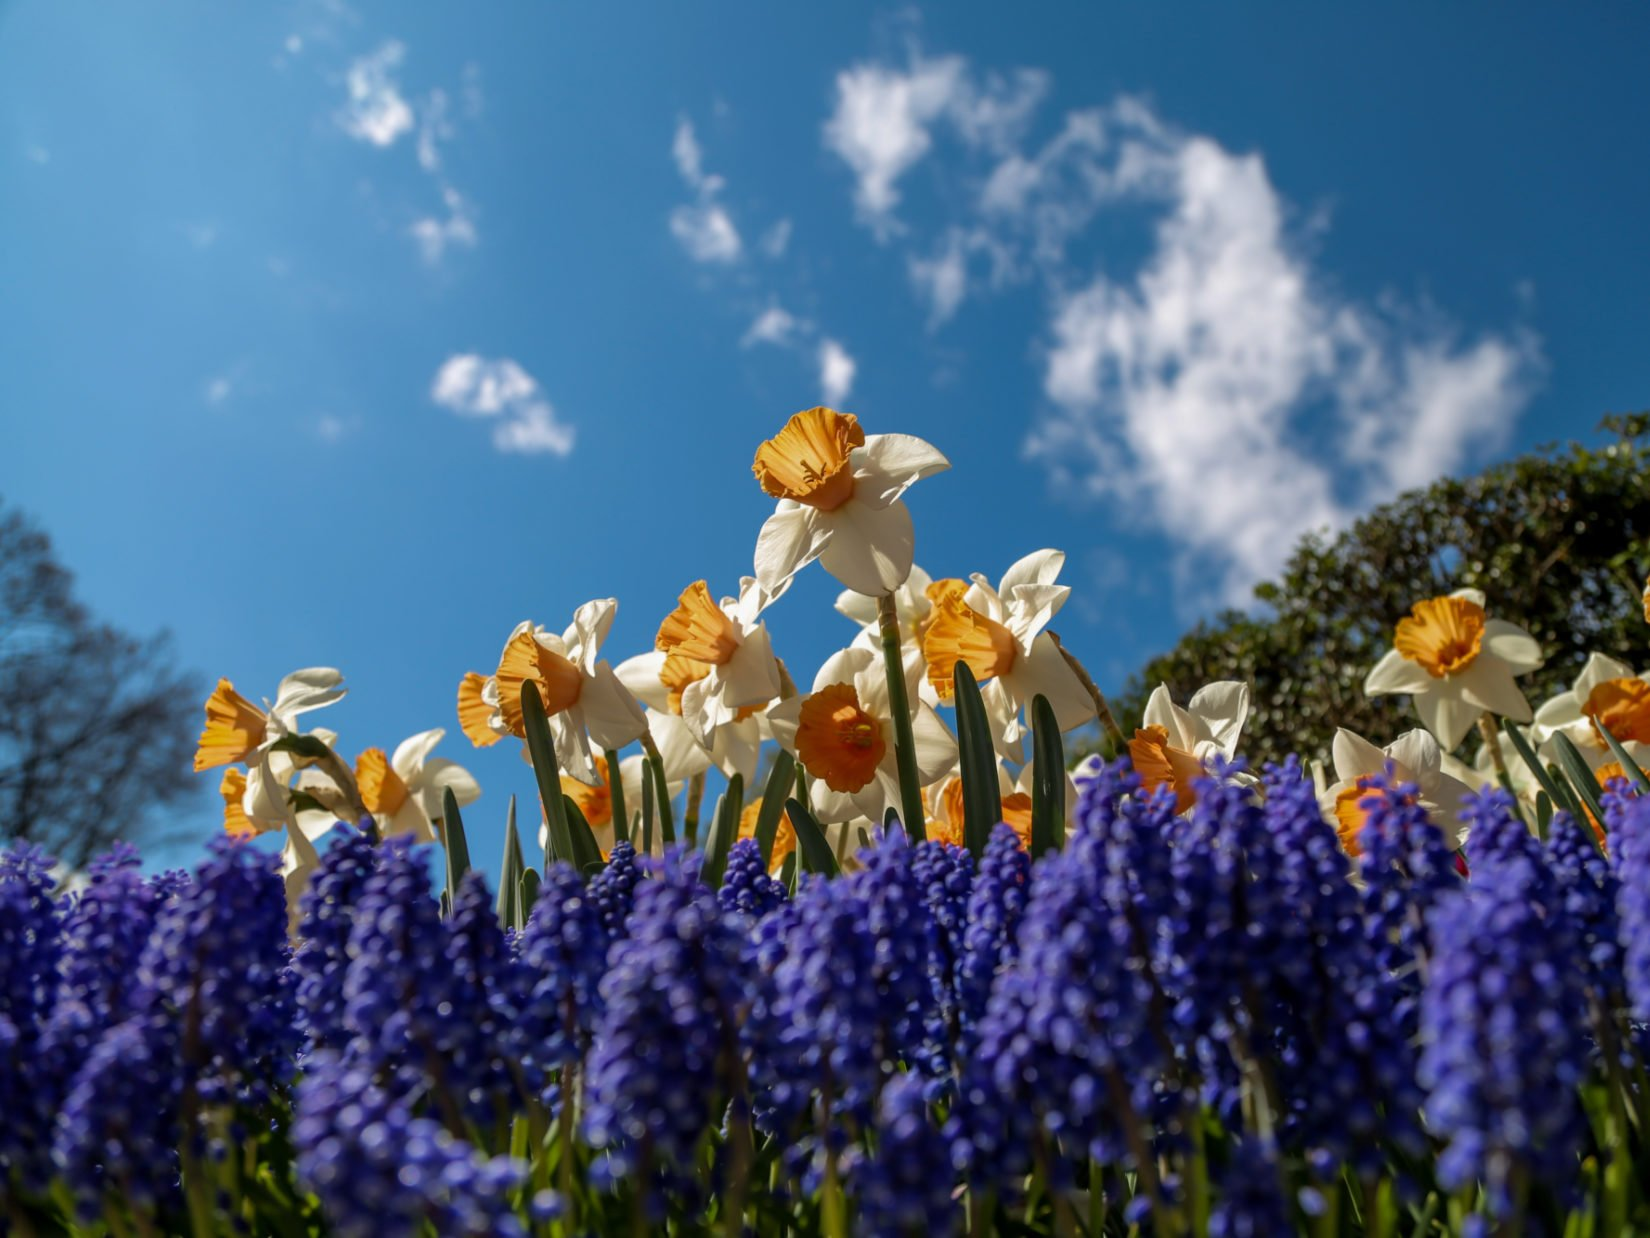 Daffodils and grape hyacinth under a beautiful spring sky